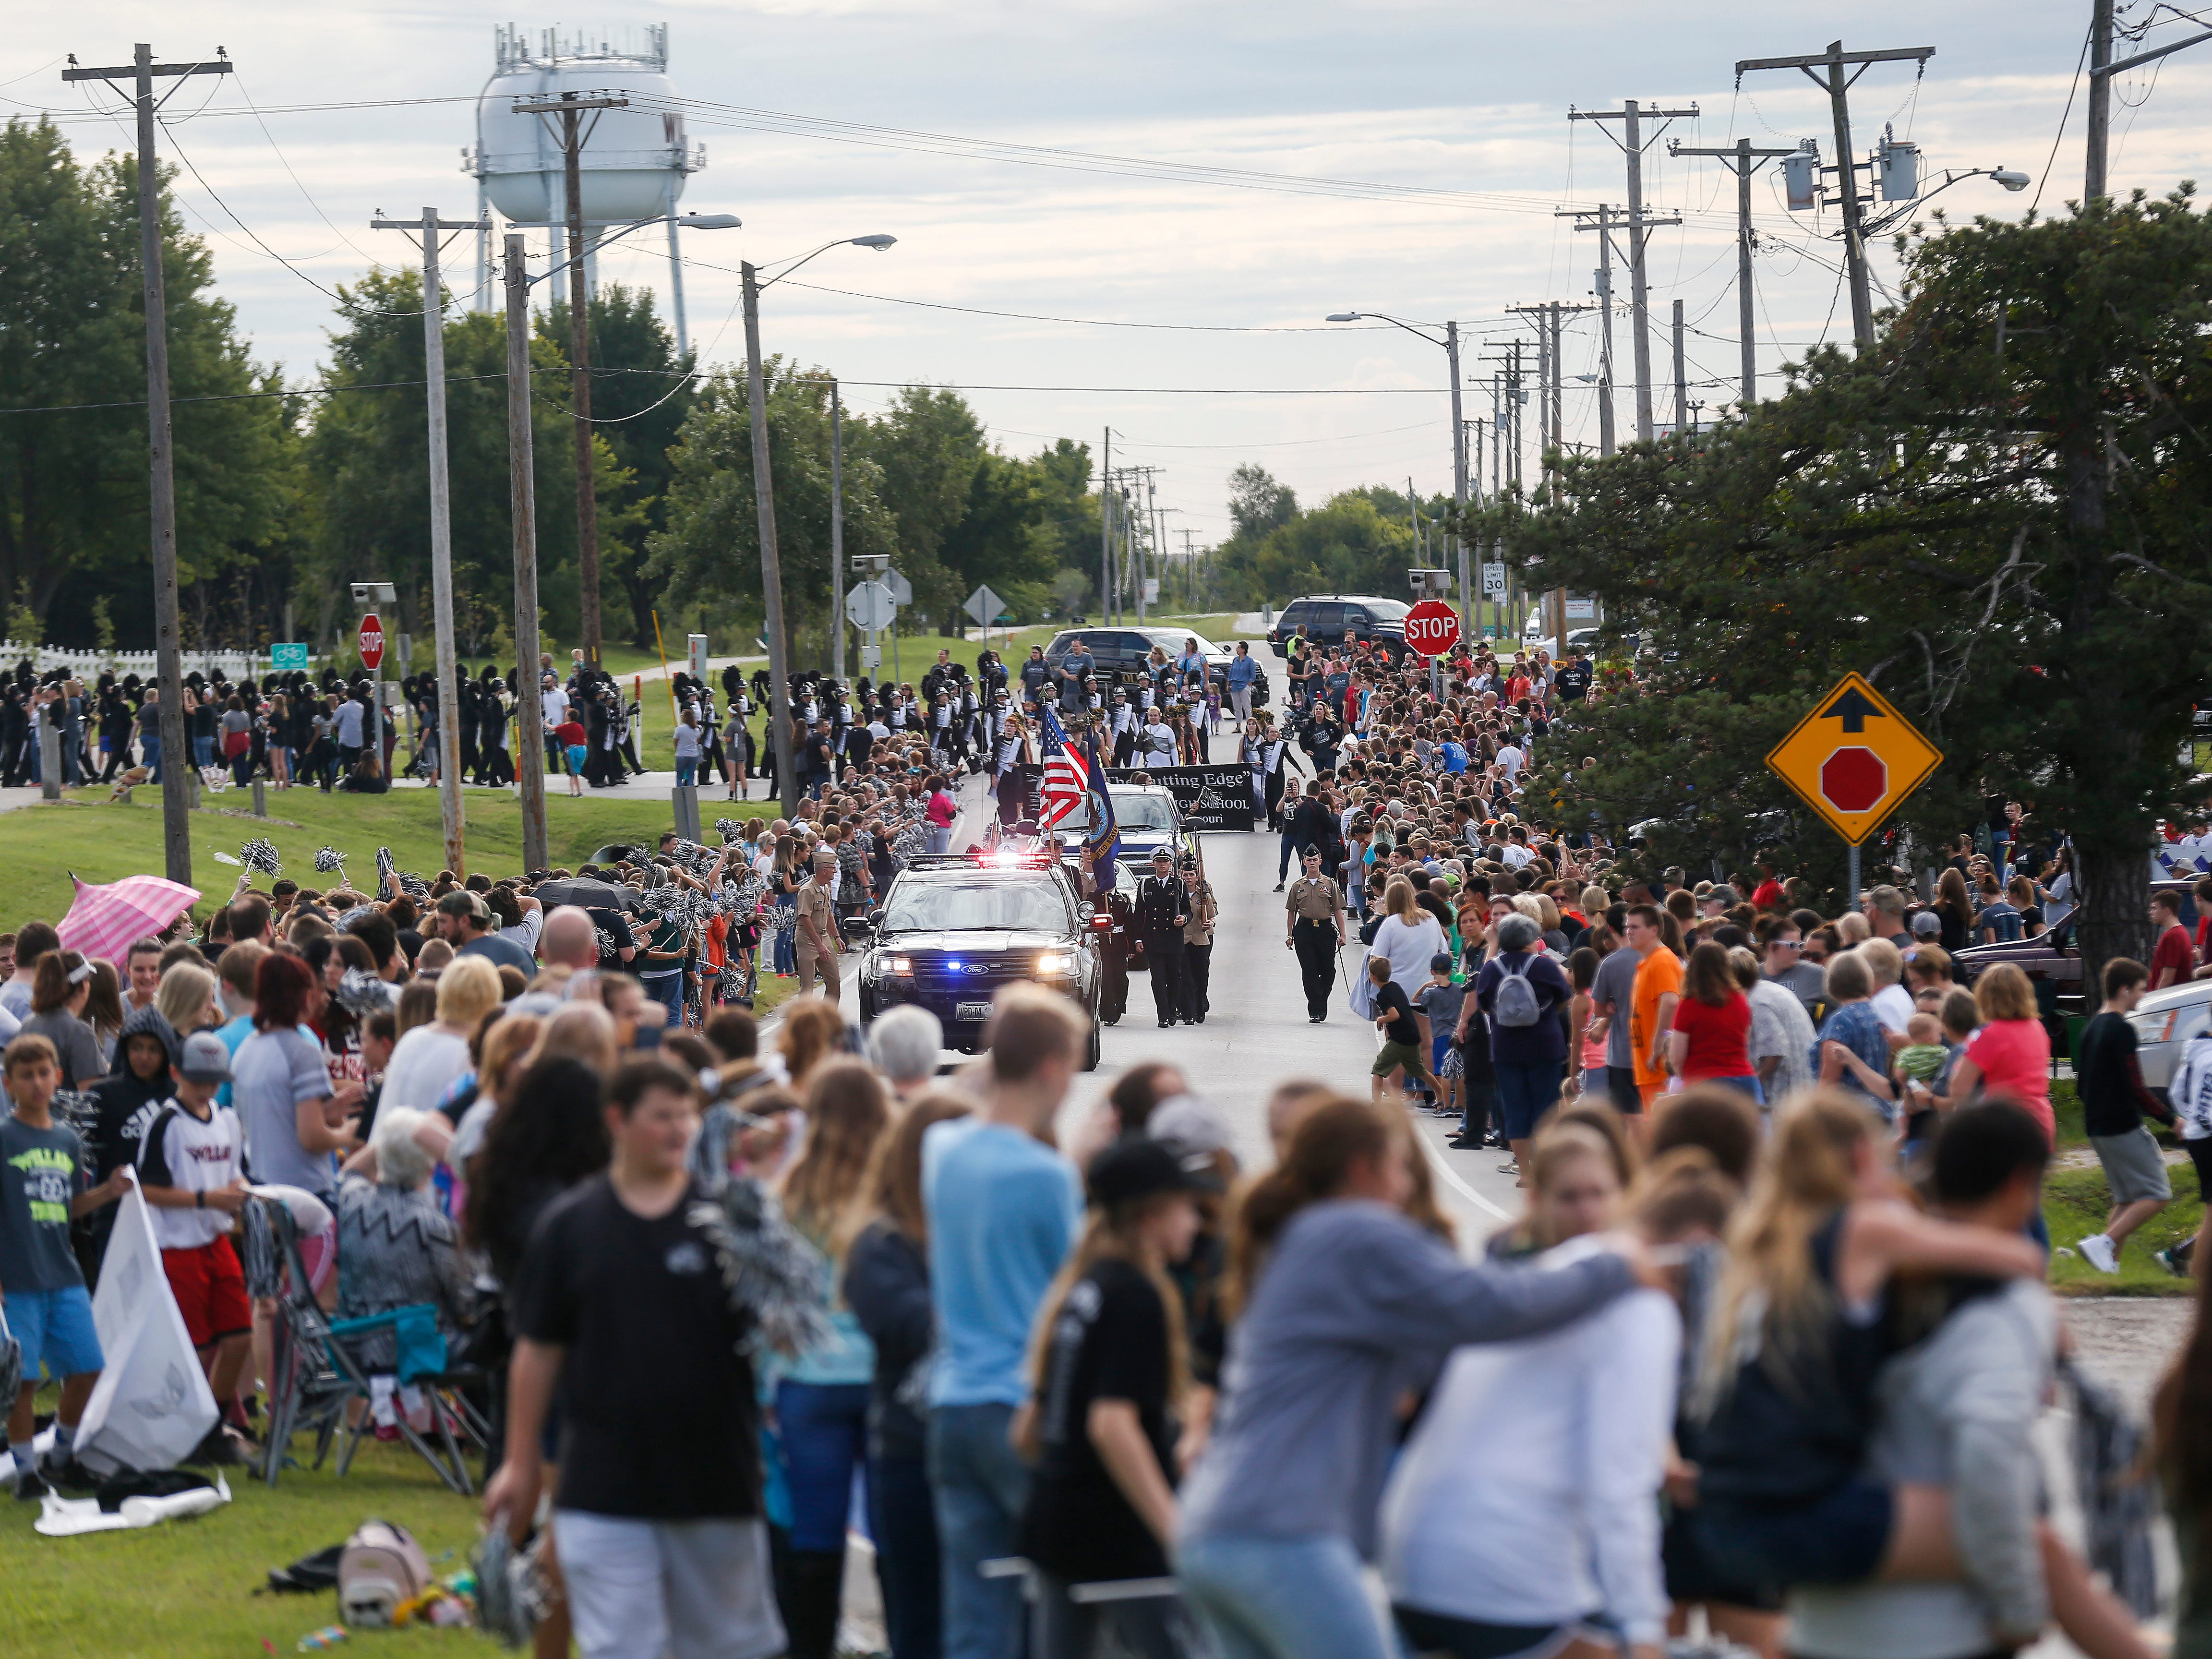 Willard held their first ever district-wide homecoming parade on Friday, Sept. 21, 2018. Community members and thousands of students from across the district lined the streets to cheer on their fellow Tigers.